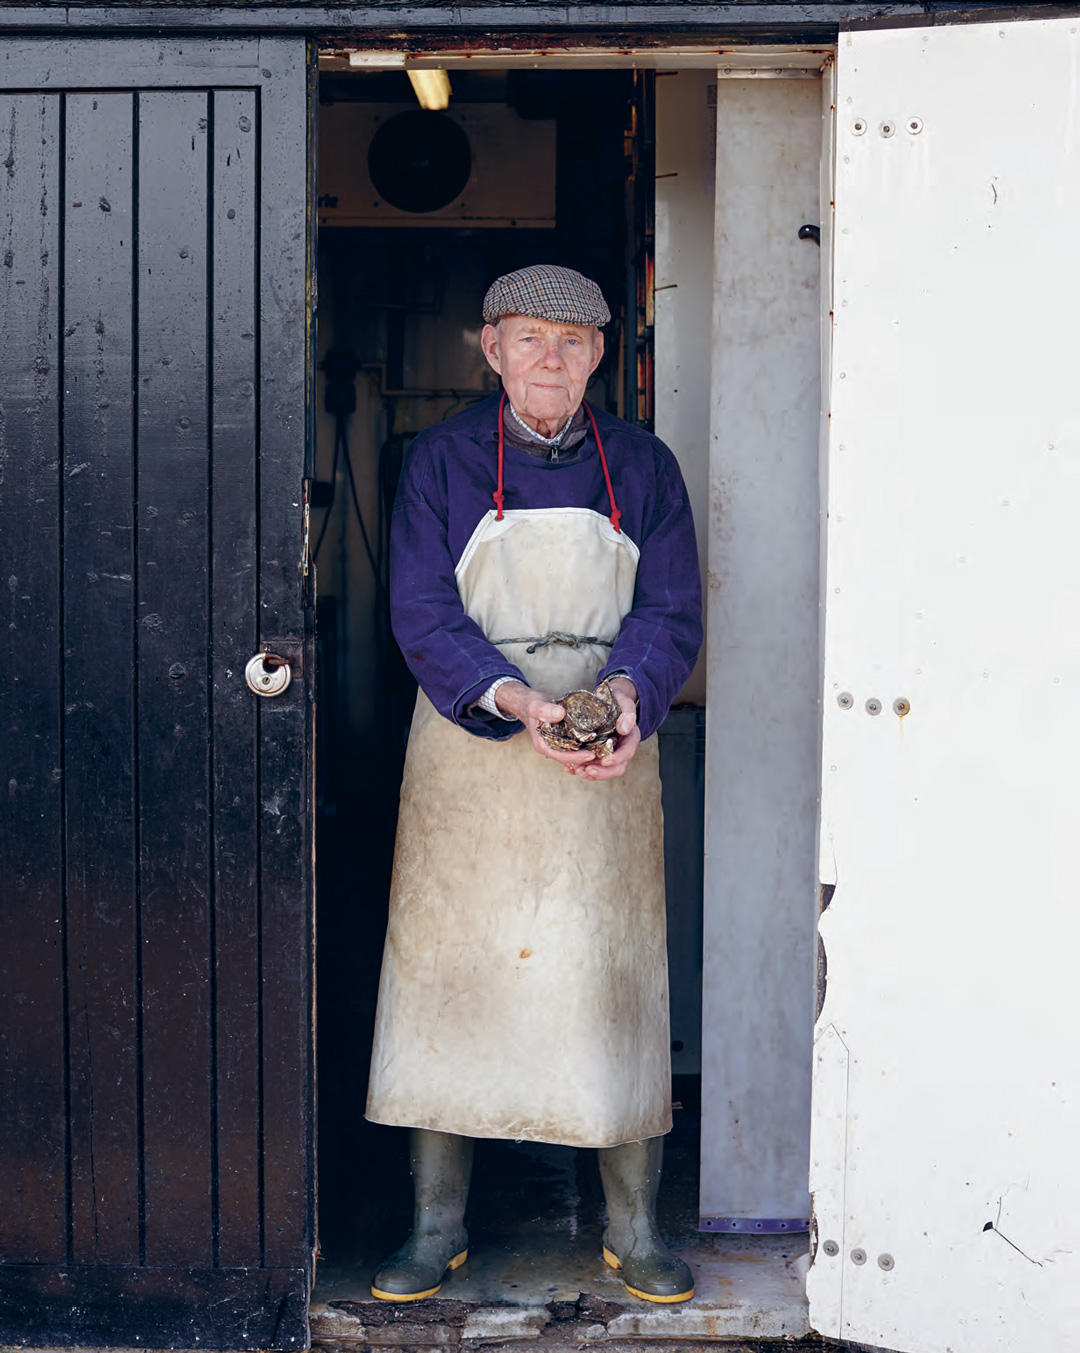 A local oyster producer, as featured in The Sportsman. All photographs by Toby Glanville